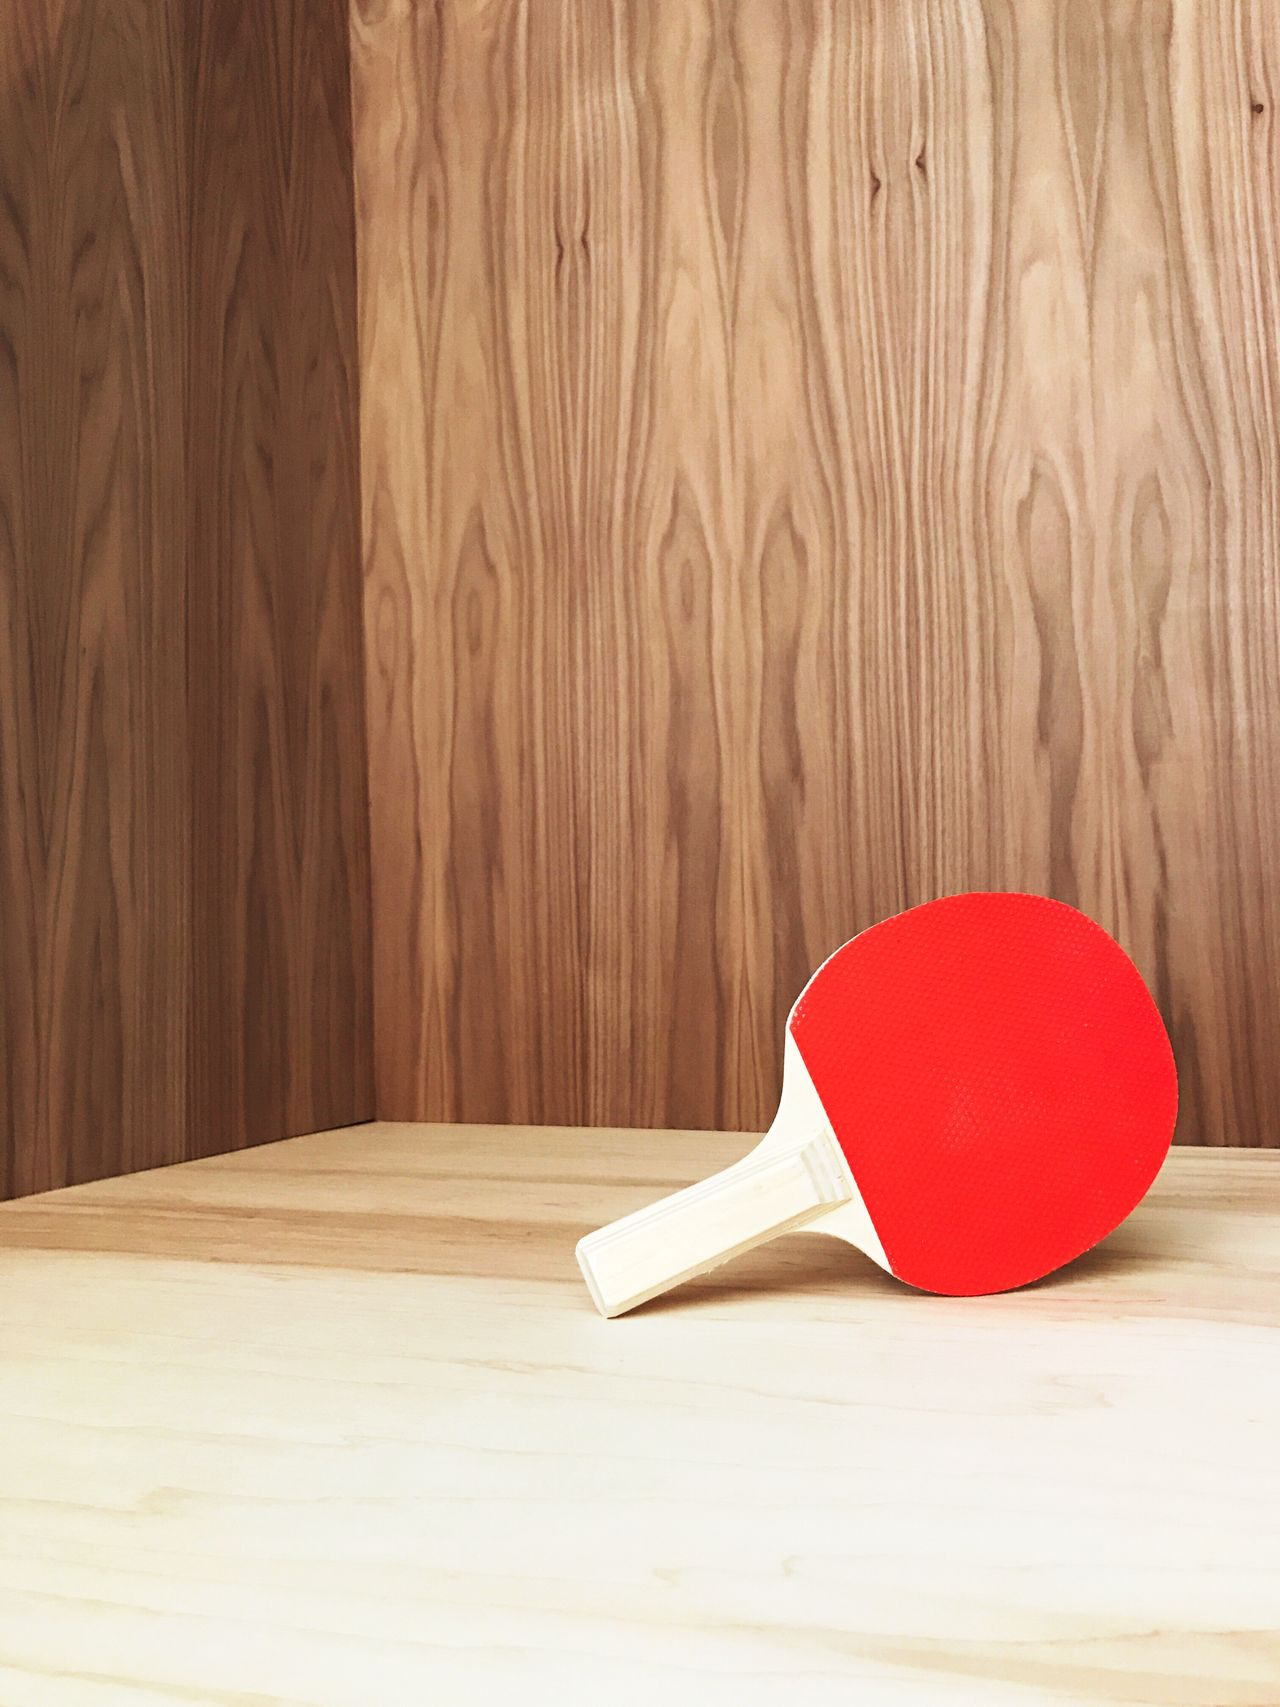 Wood - Material Indoors  Table No People Wood Grain Close-up Day Vintage Wood Paneling Daiso Single Object Ping Pong Paddle Red Brown Childhood Wood Grain Monochrome_life Shapes And Forms Indoors  Studio Shot Fresh on Market 2017